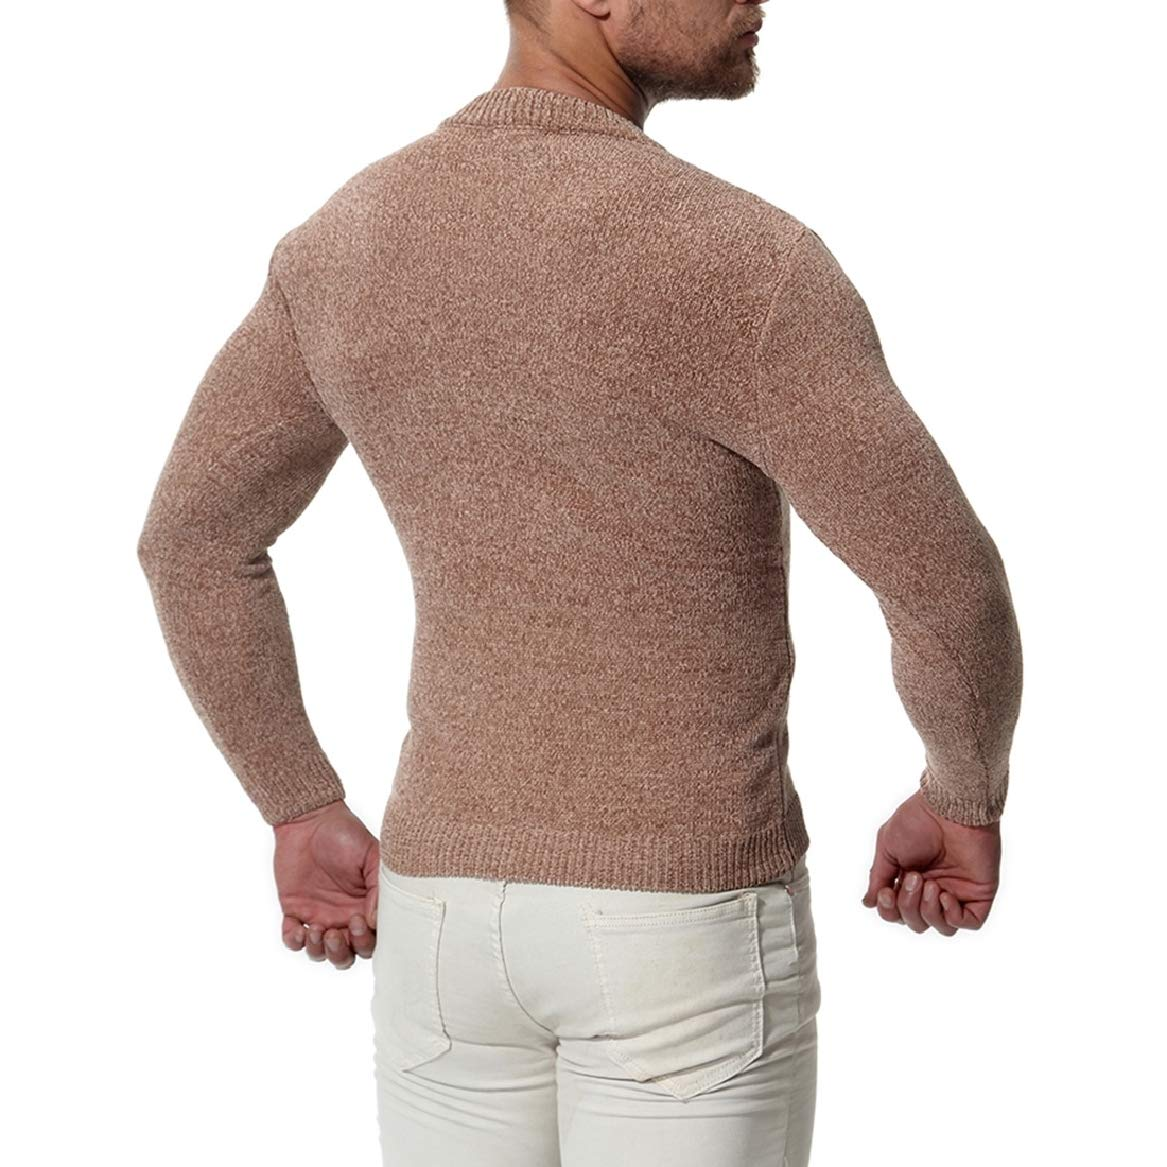 SayahMen Pullover Oversize Scoop Neck Knitted Pullover Sweater